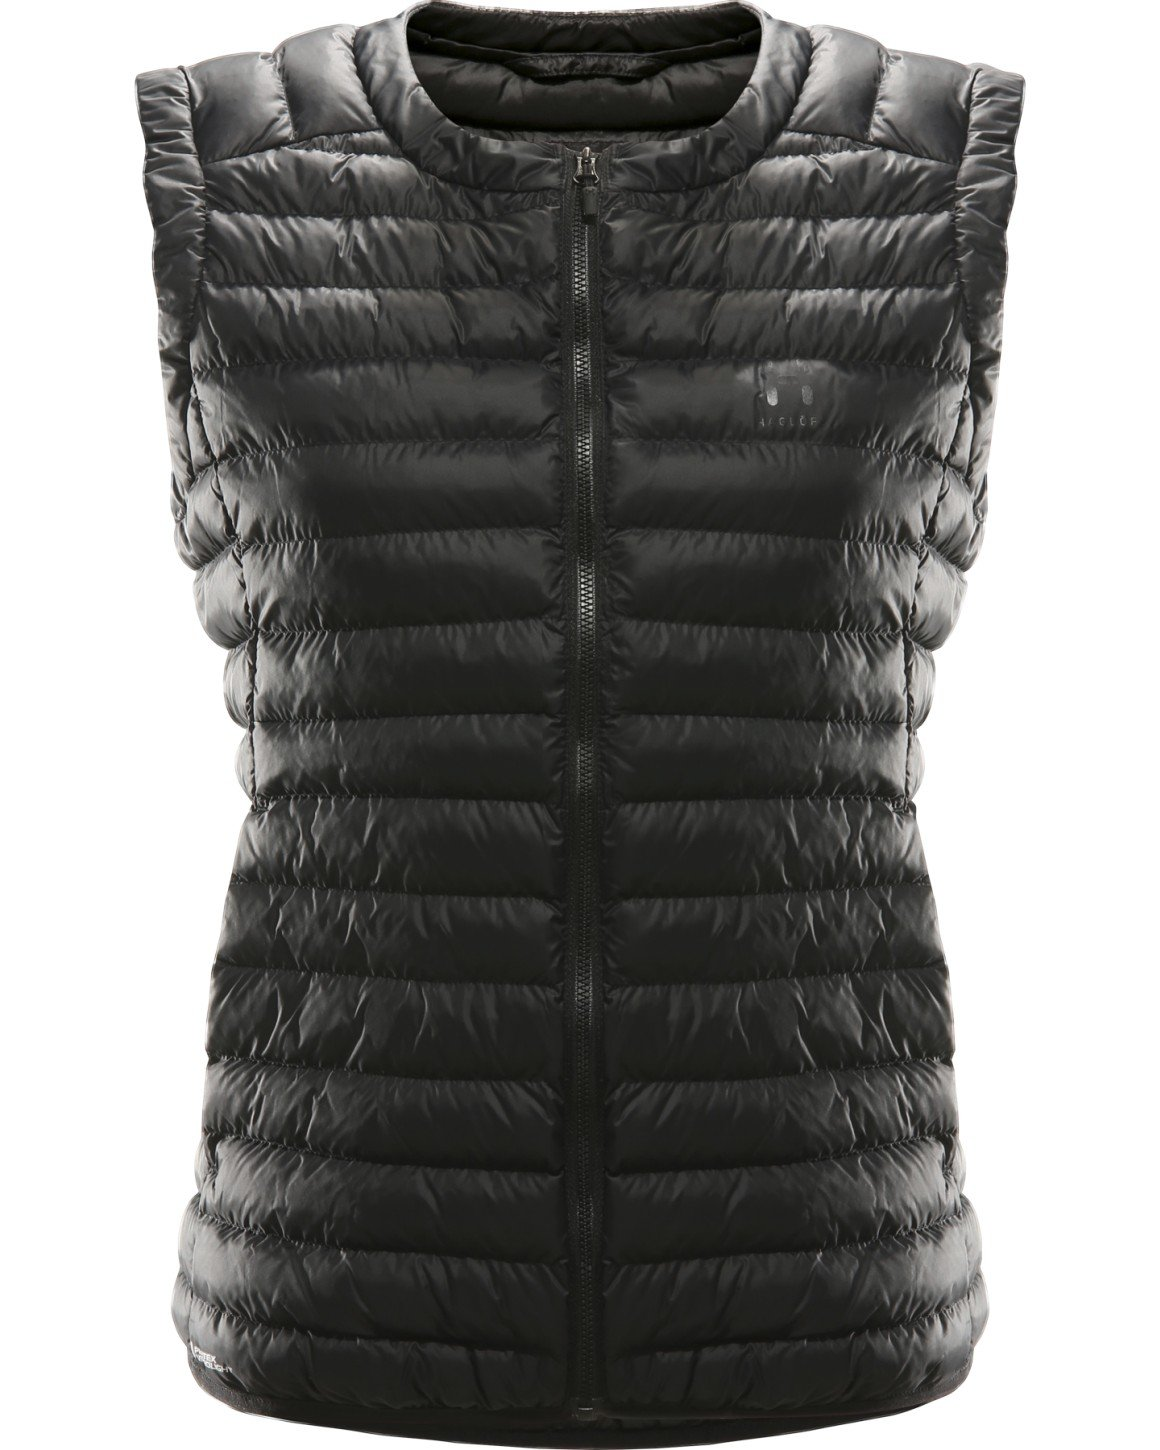 Haglöfs Essens Mimic Vest Women black 2017 outdoor vest